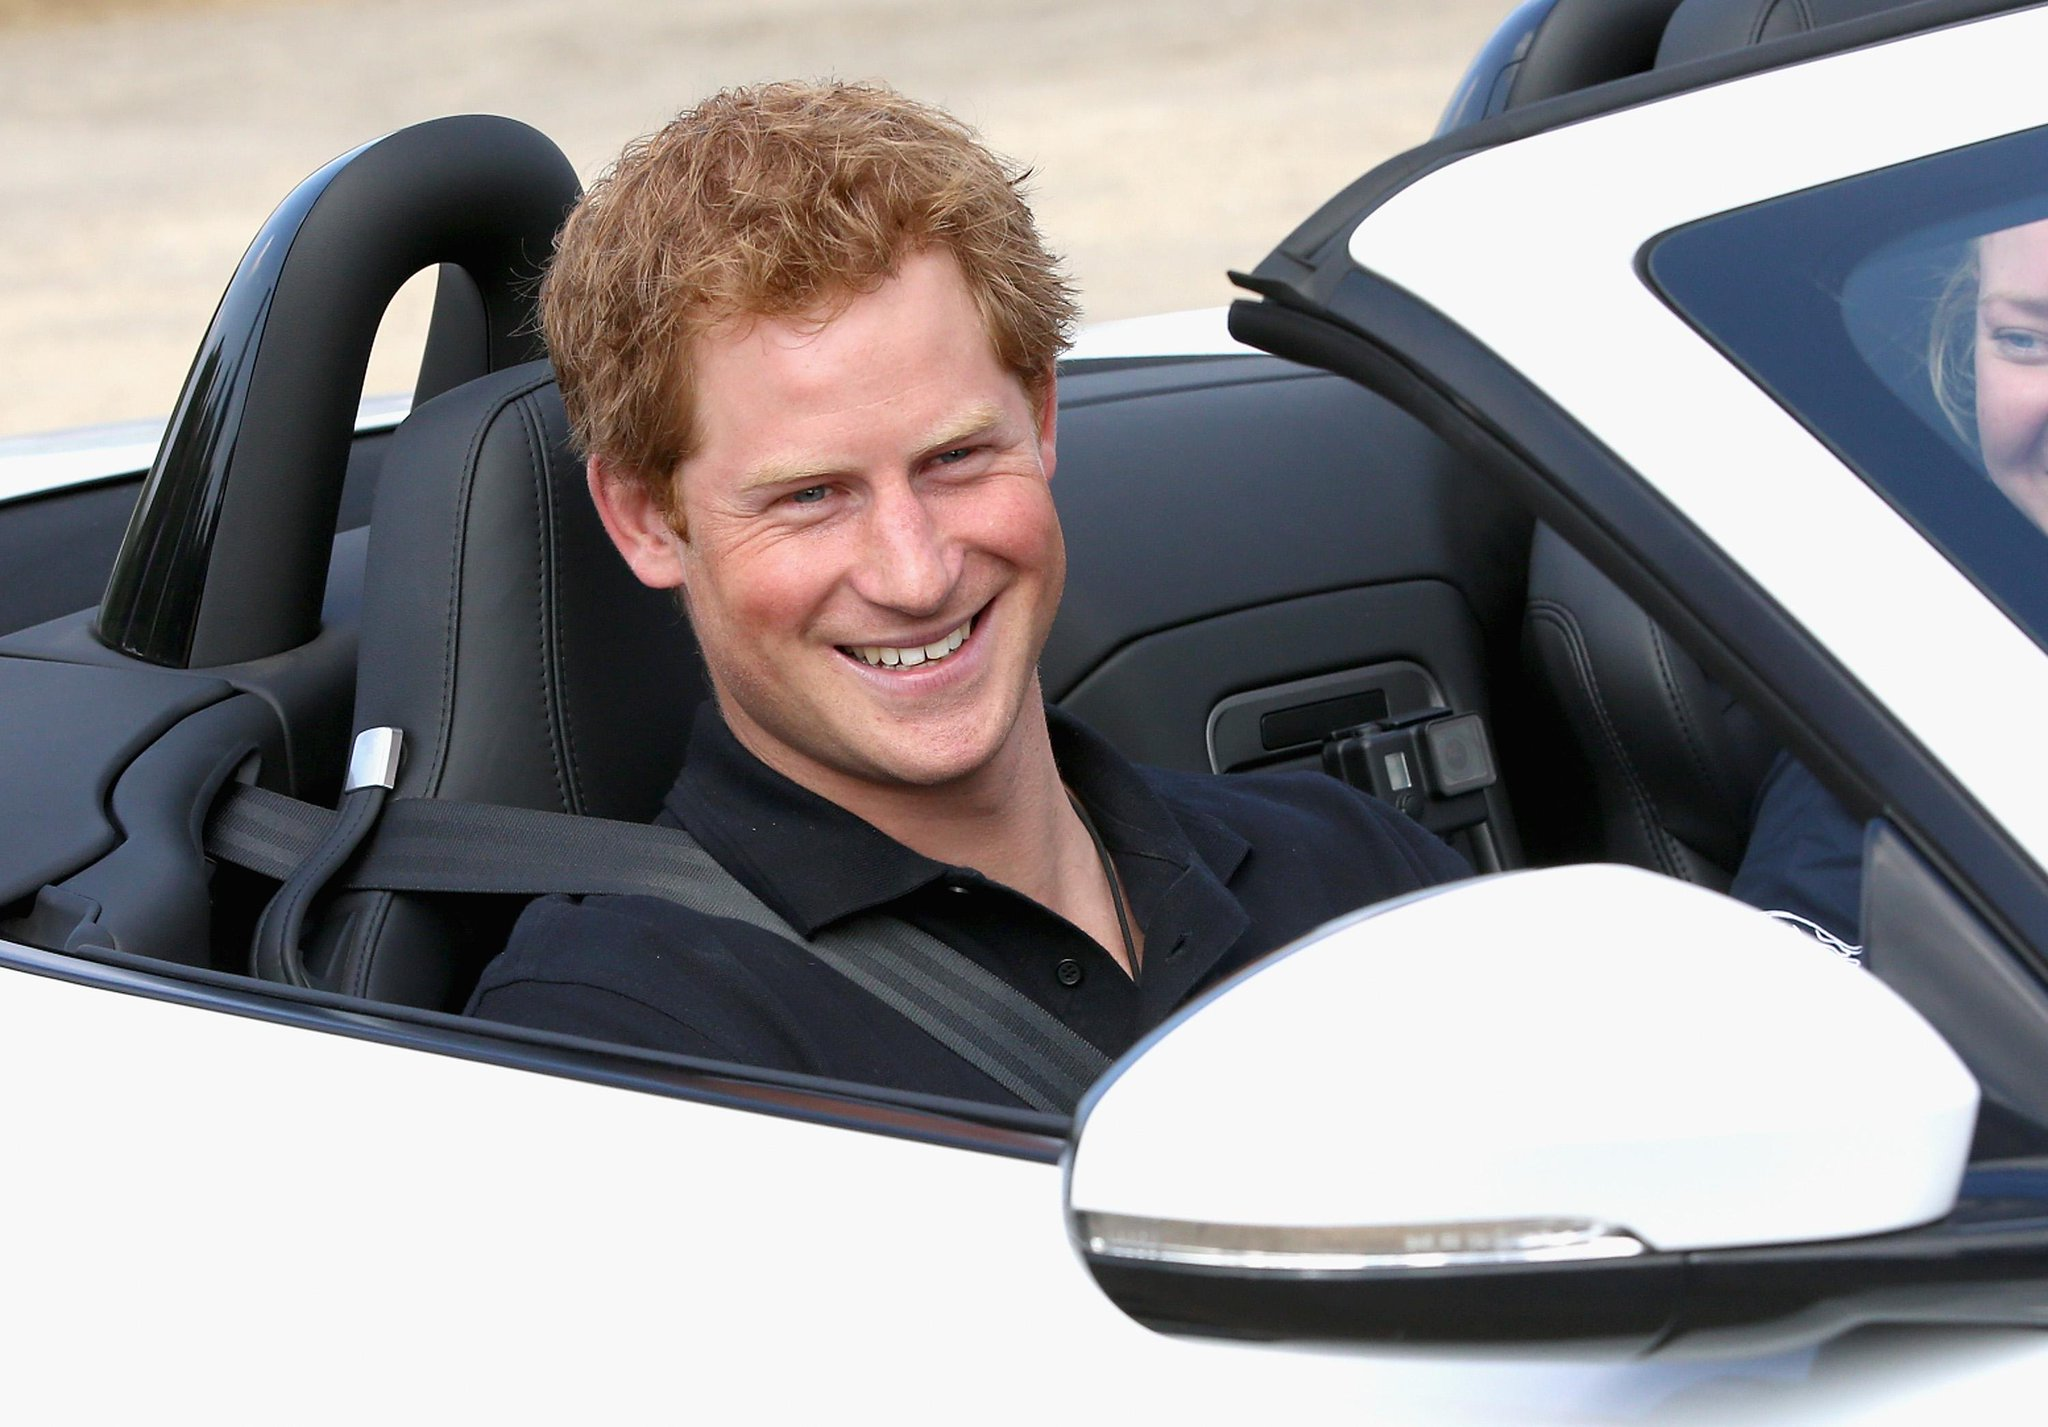 Prince Harry 'can't wait' for royal baby #2: http://t.co/q0h7f3B3AA #KateMiddleton #royalbaby http://t.co/njNsnsZ7oj